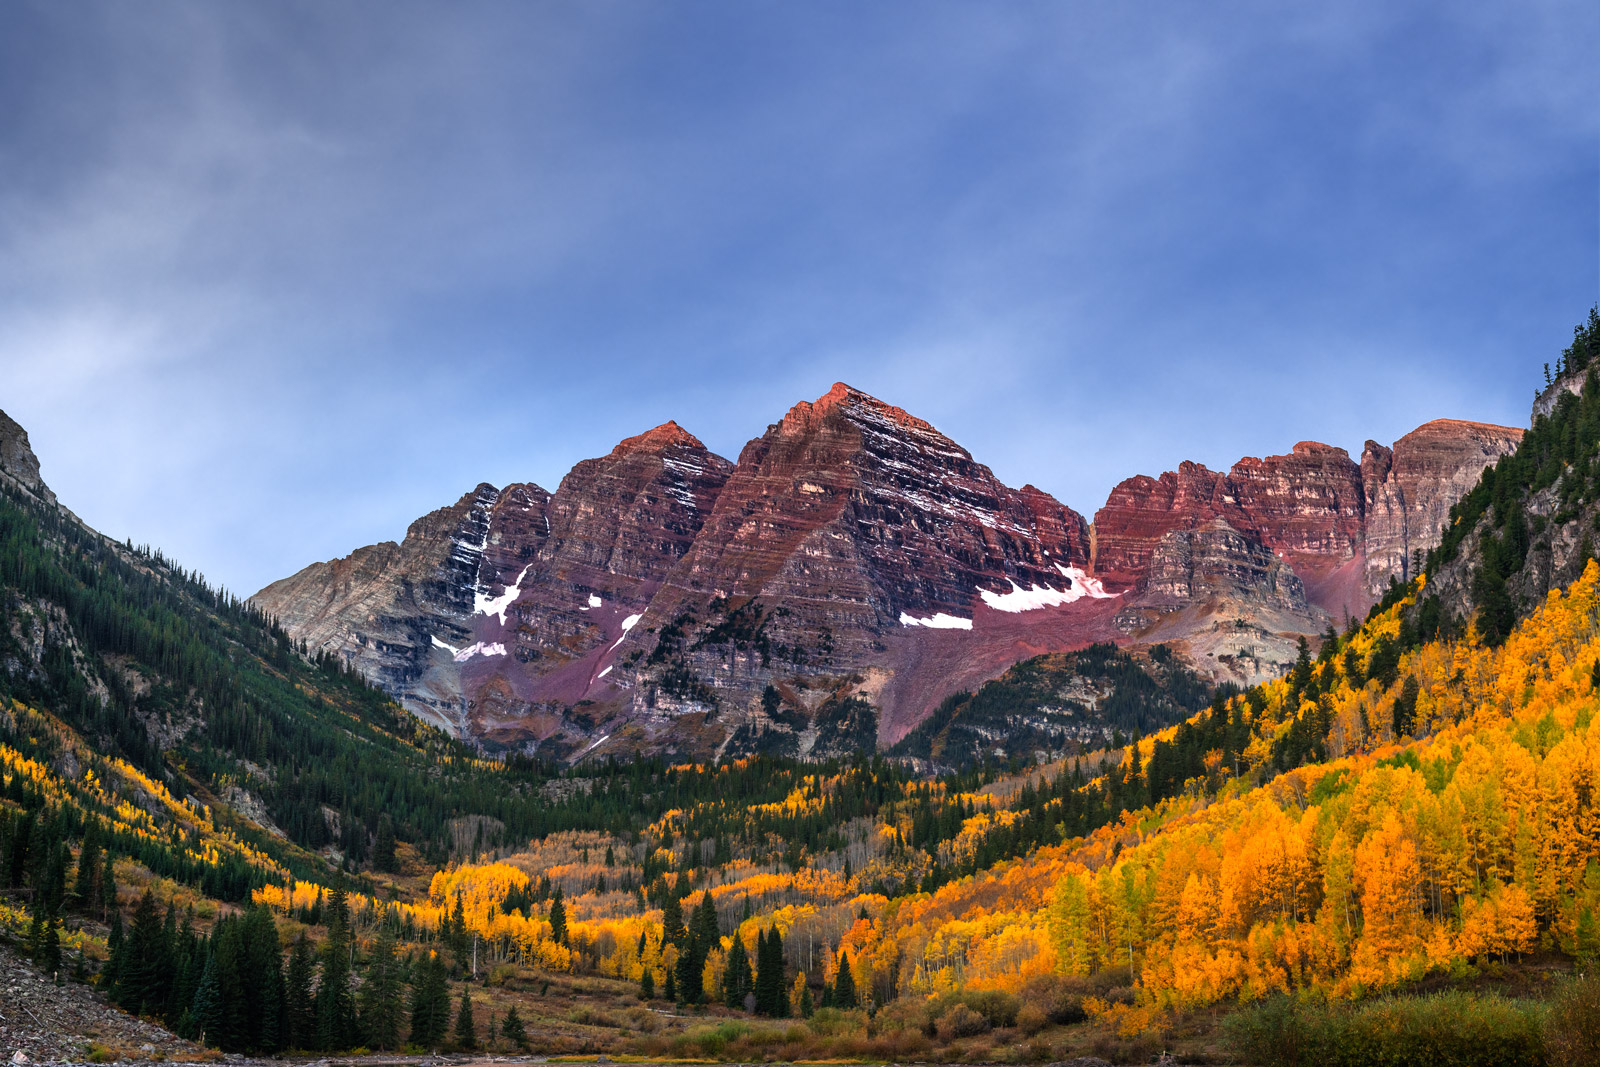 A Limited Edition, Fine Art photograph of Maroon Peak and other mountains that are known as Maroon Bells due to their bell-shaped...